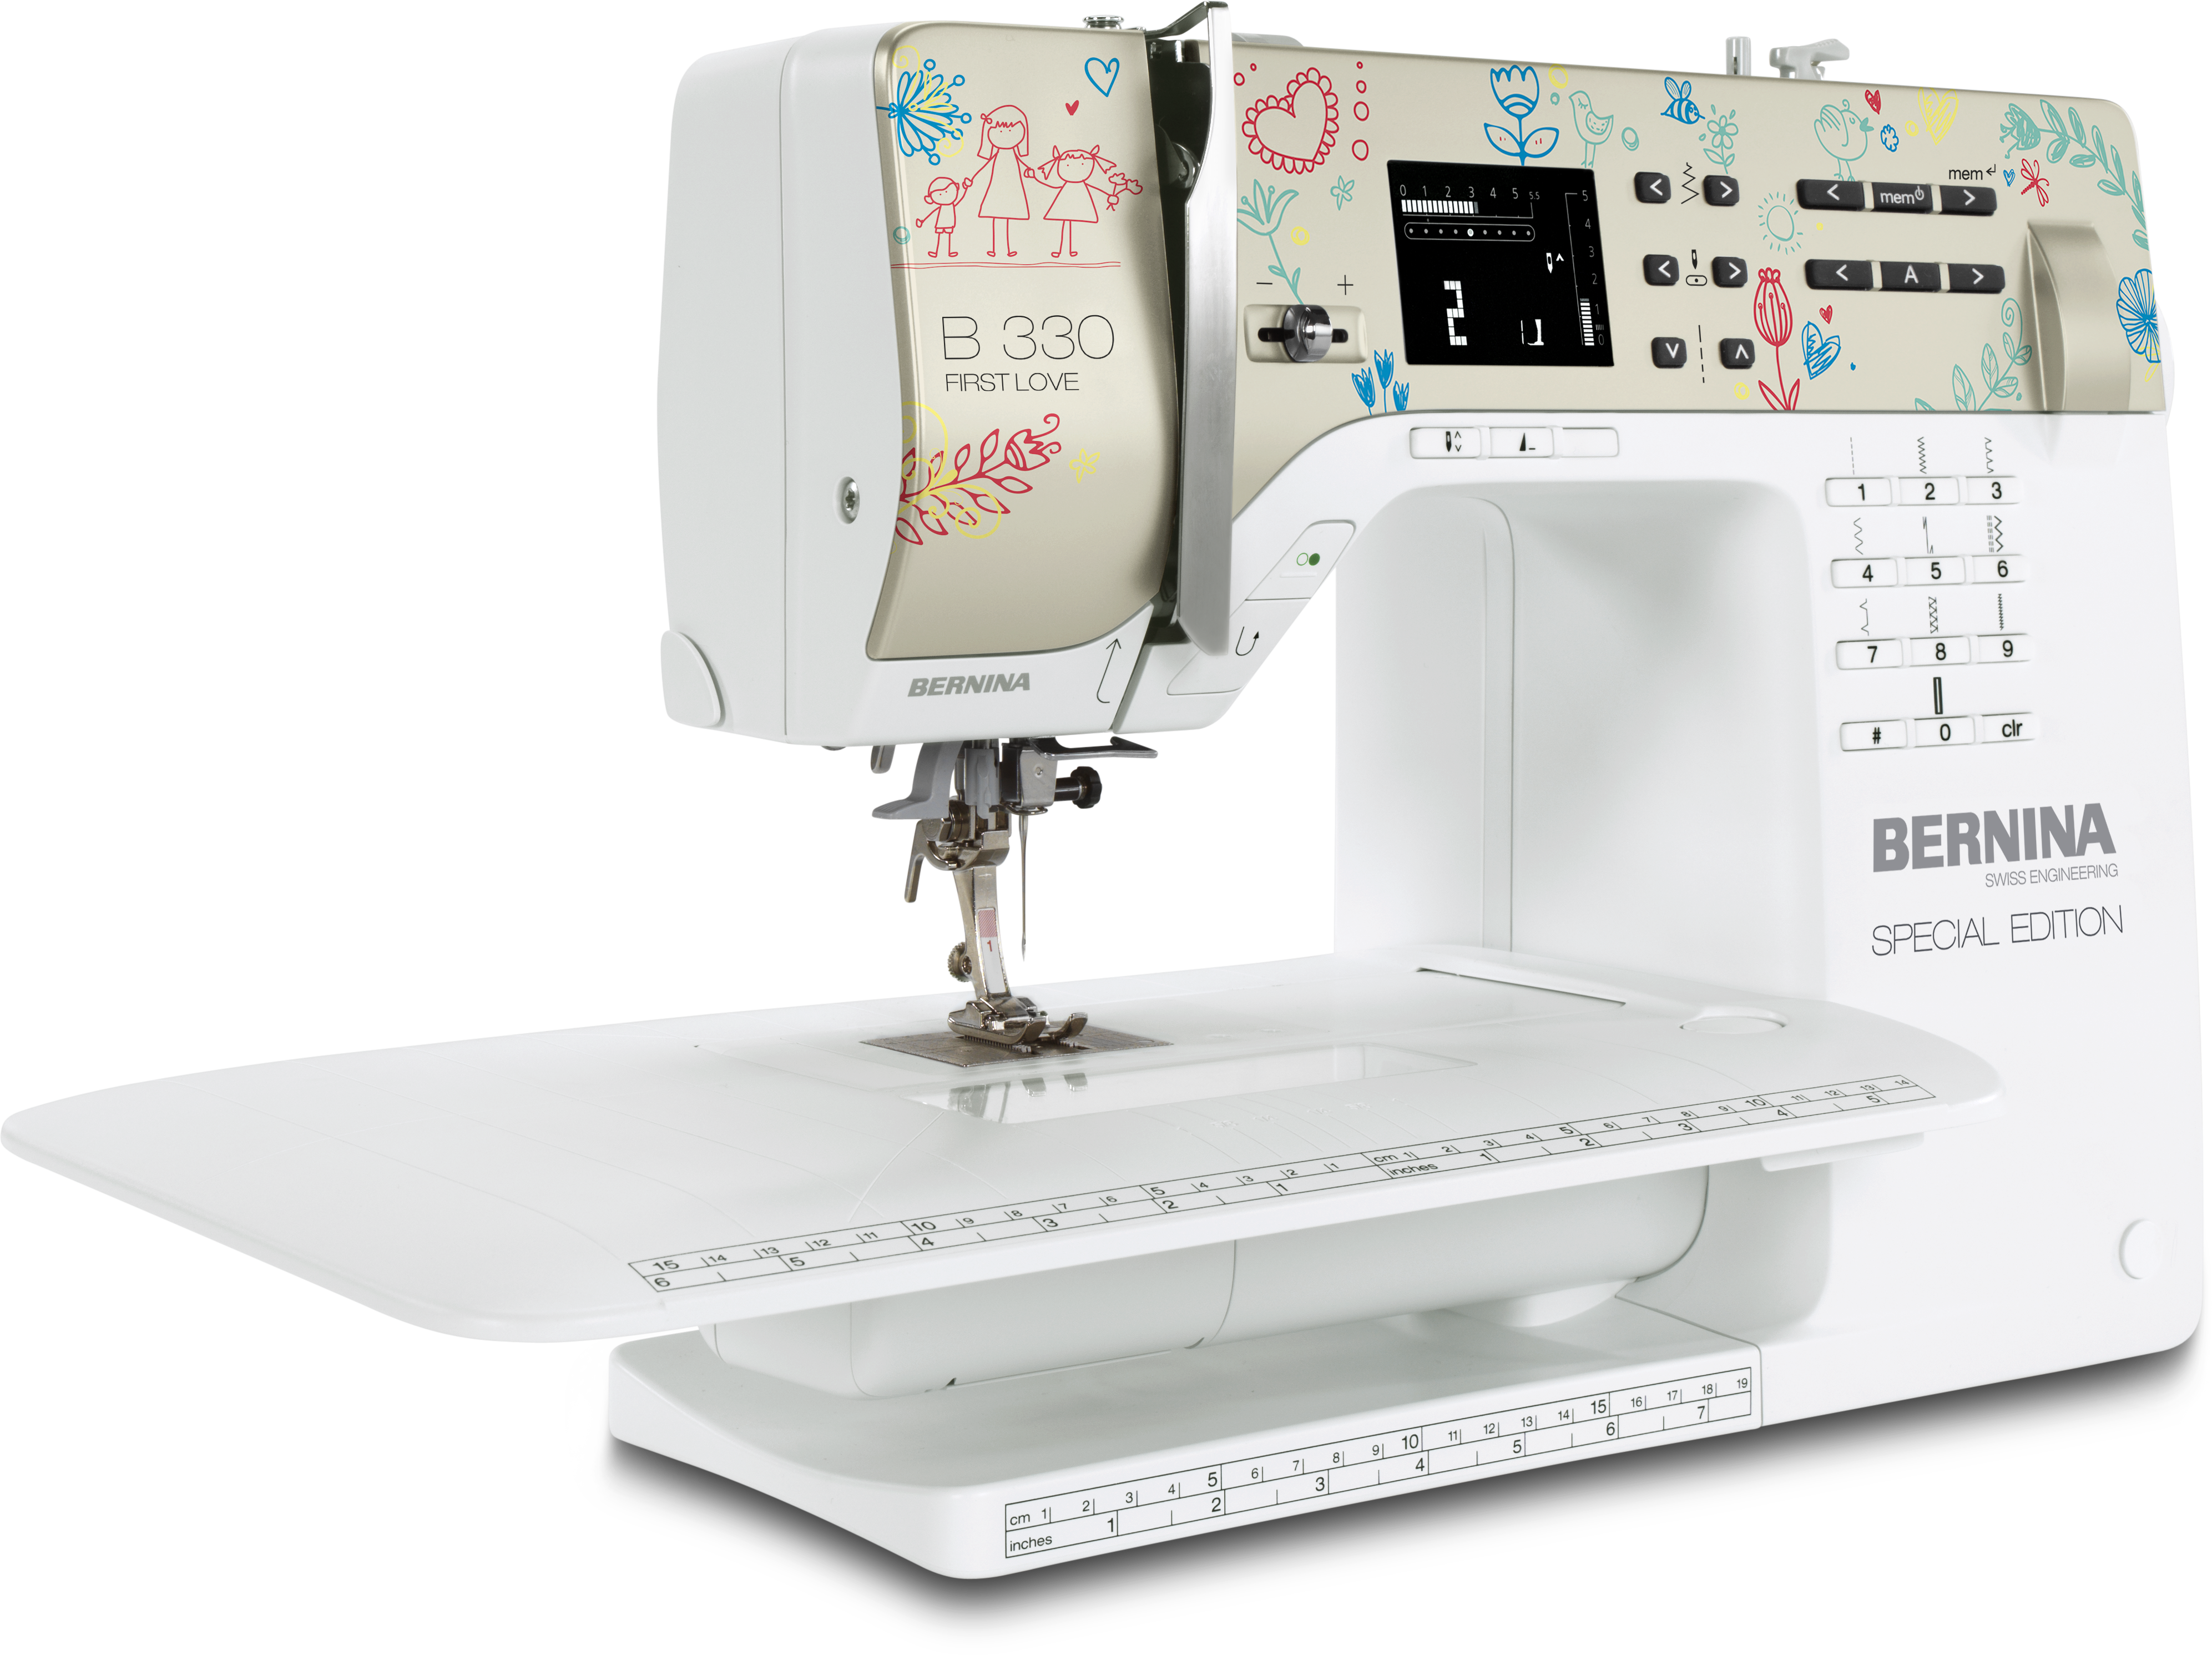 Introducing the BERNINA 330 Special Edition First Love with